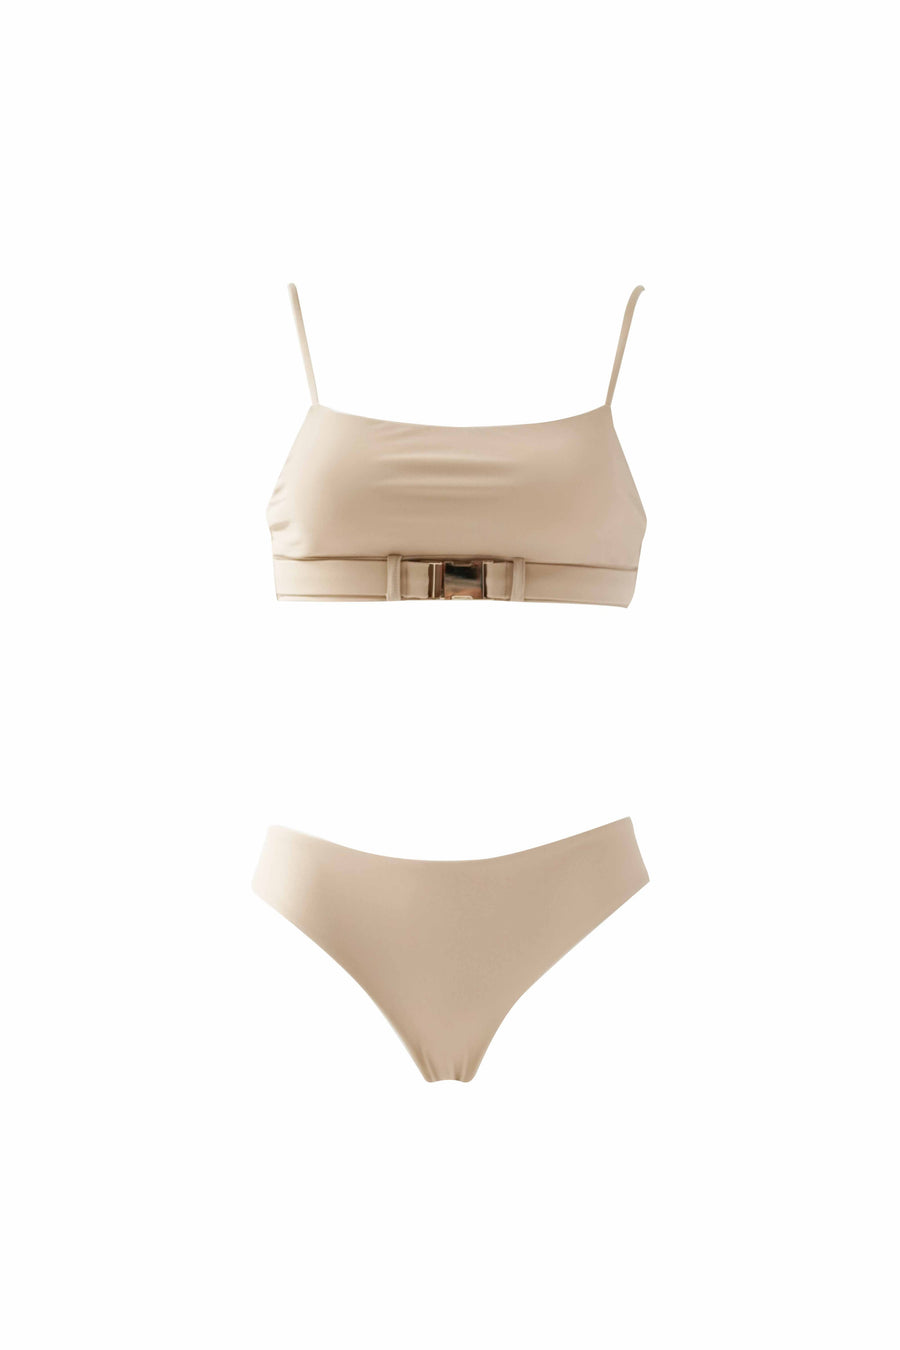 Belted Bandeau Top - Taupe